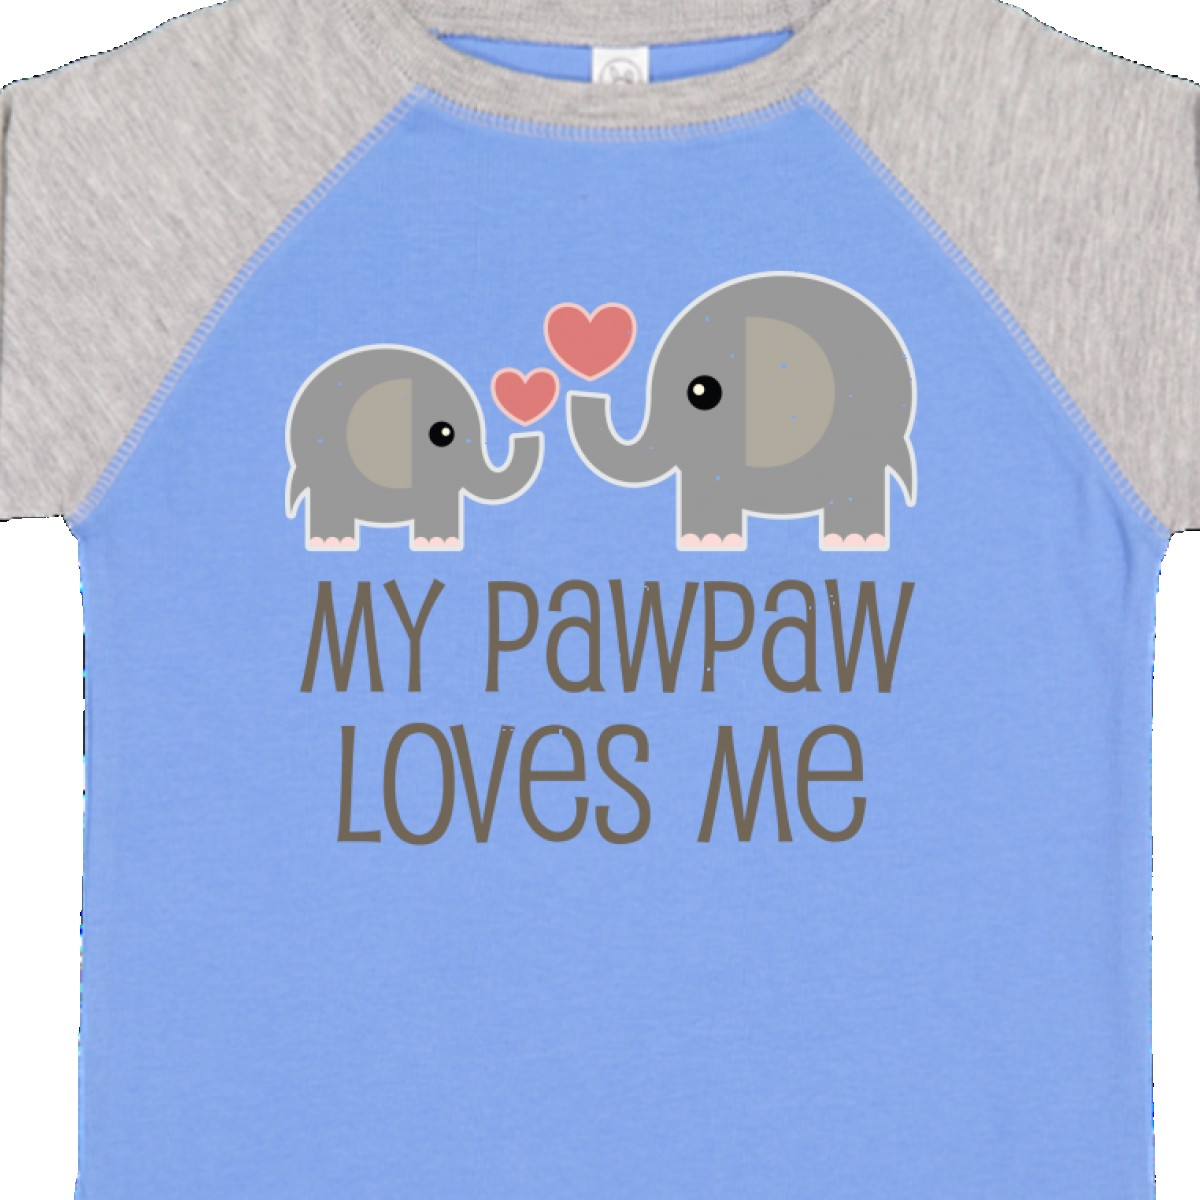 Inktastic-My-Pawpaw-Loves-Me-Grandchild-Toddler-T-Shirt-Gift-From-Grandpa-Childs thumbnail 4